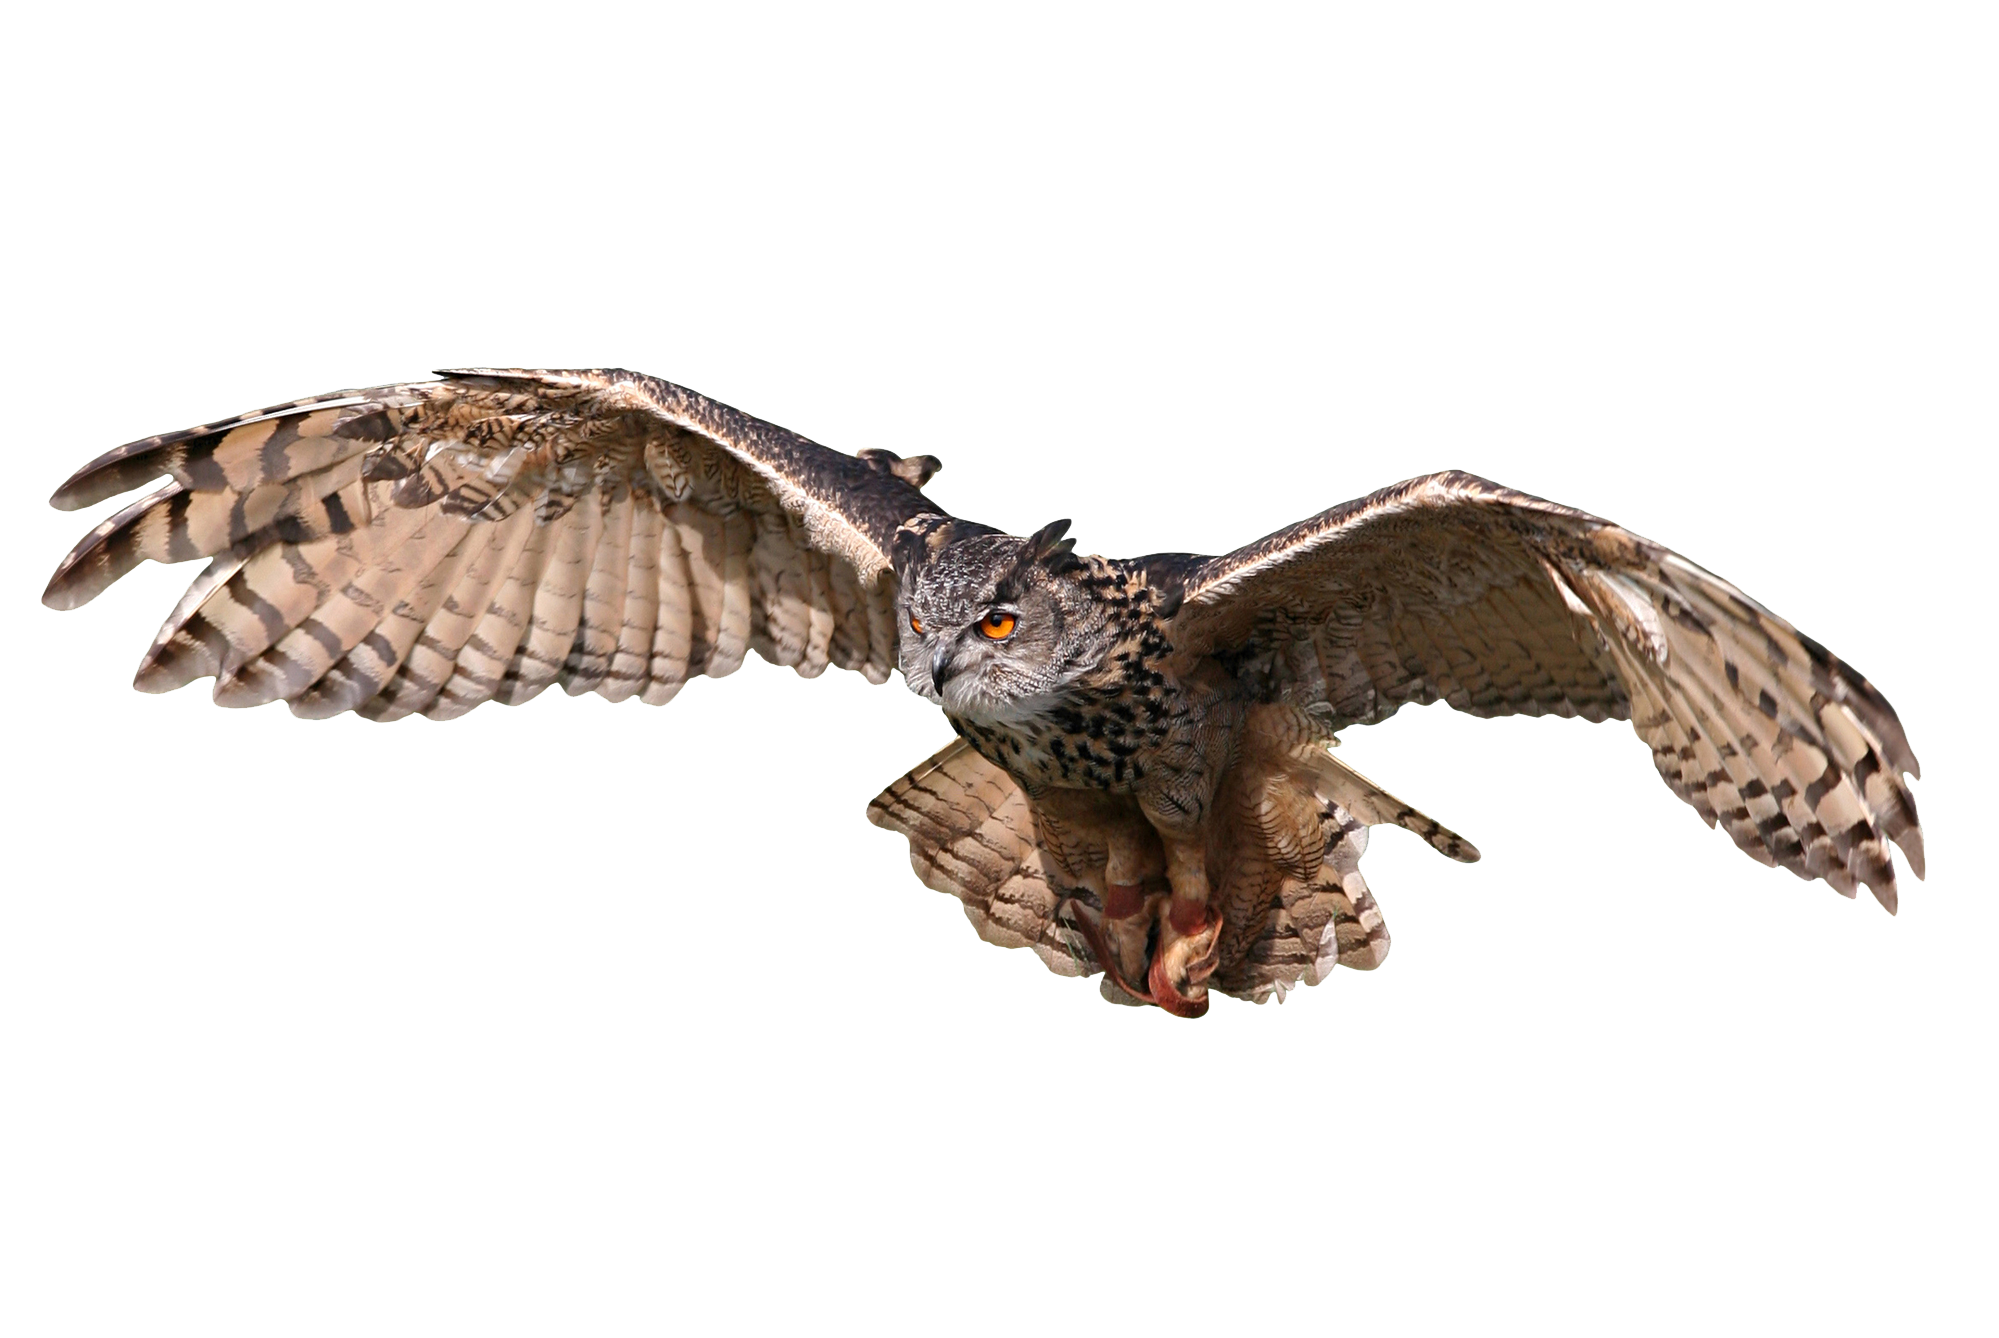 Owl flying png. Contact the owls nest